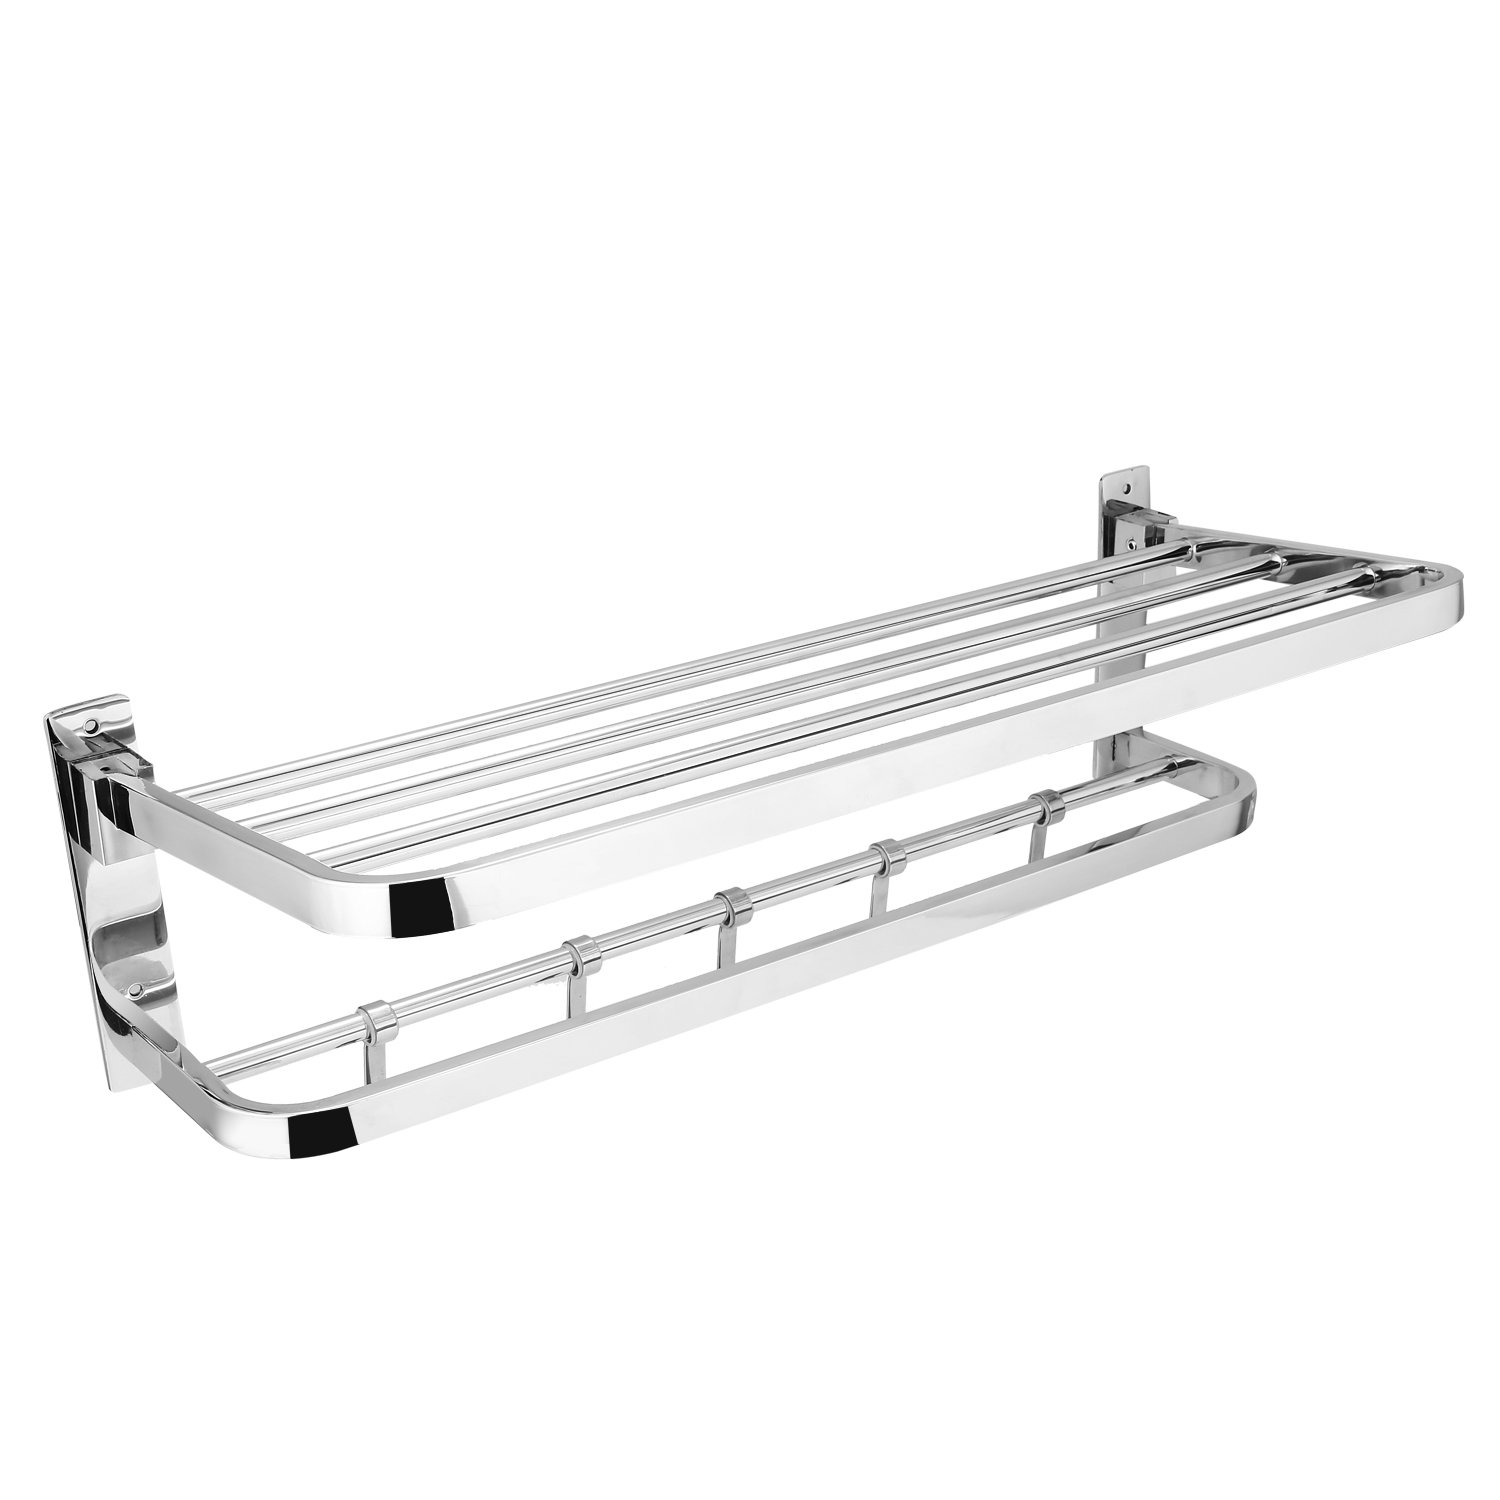 Leoneva Wall Mount 2 Tier Tower Rack, Stainless Steel Rail Tower Hotel Shelf for Storage Towel Bars (22 x 9.5 inches)